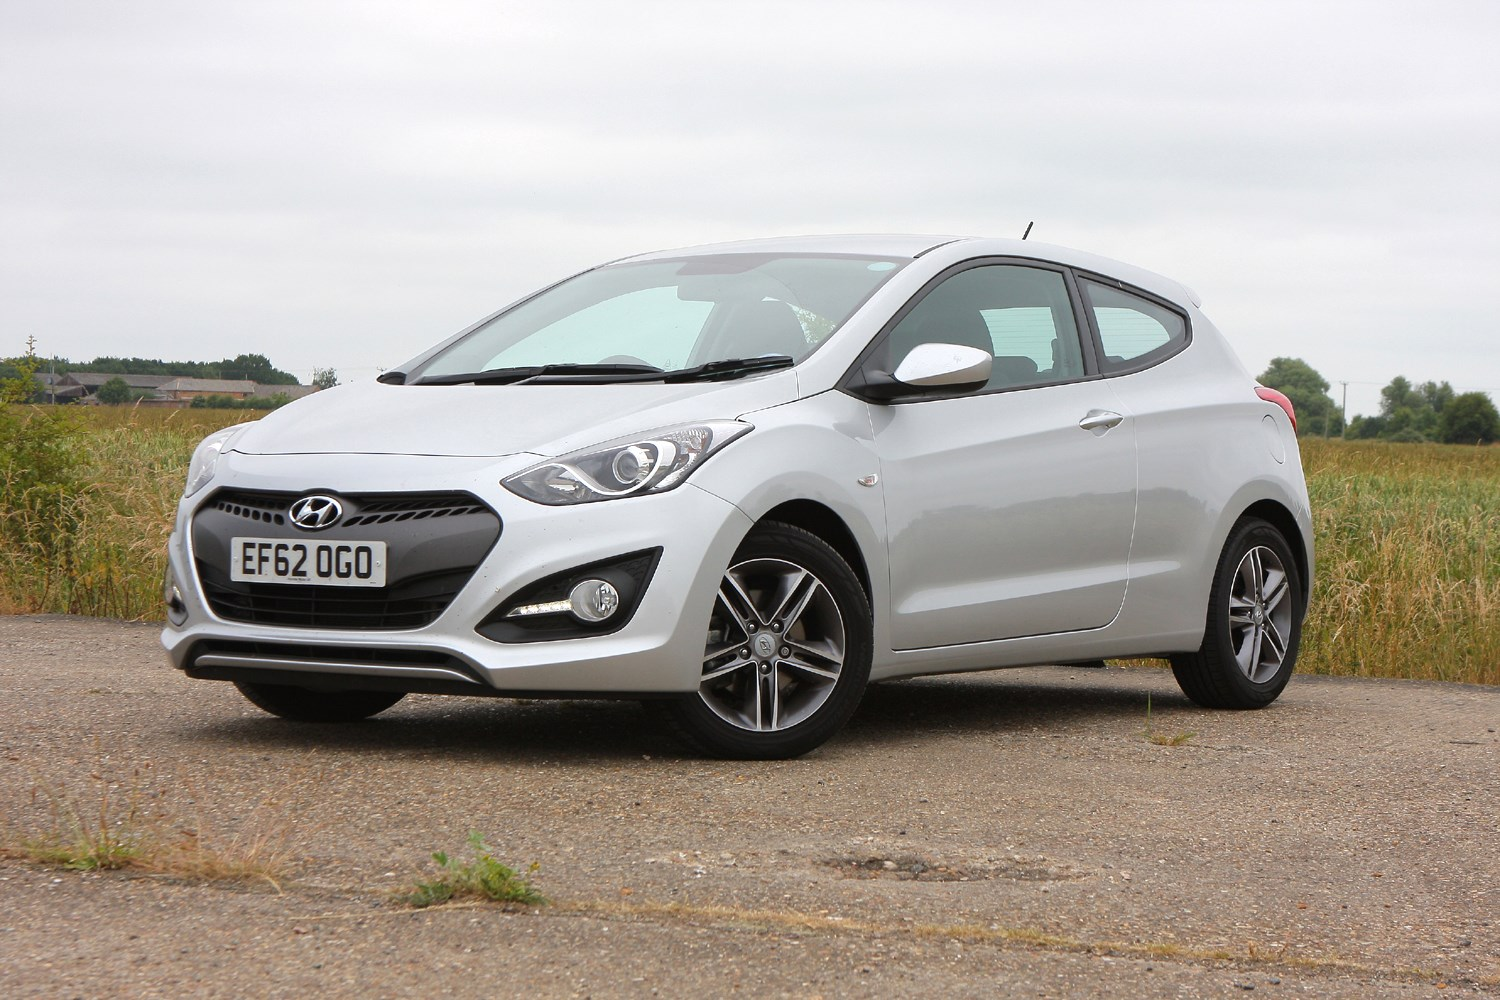 hyundai i30 hatchback 2012 2017 photos parkers. Black Bedroom Furniture Sets. Home Design Ideas